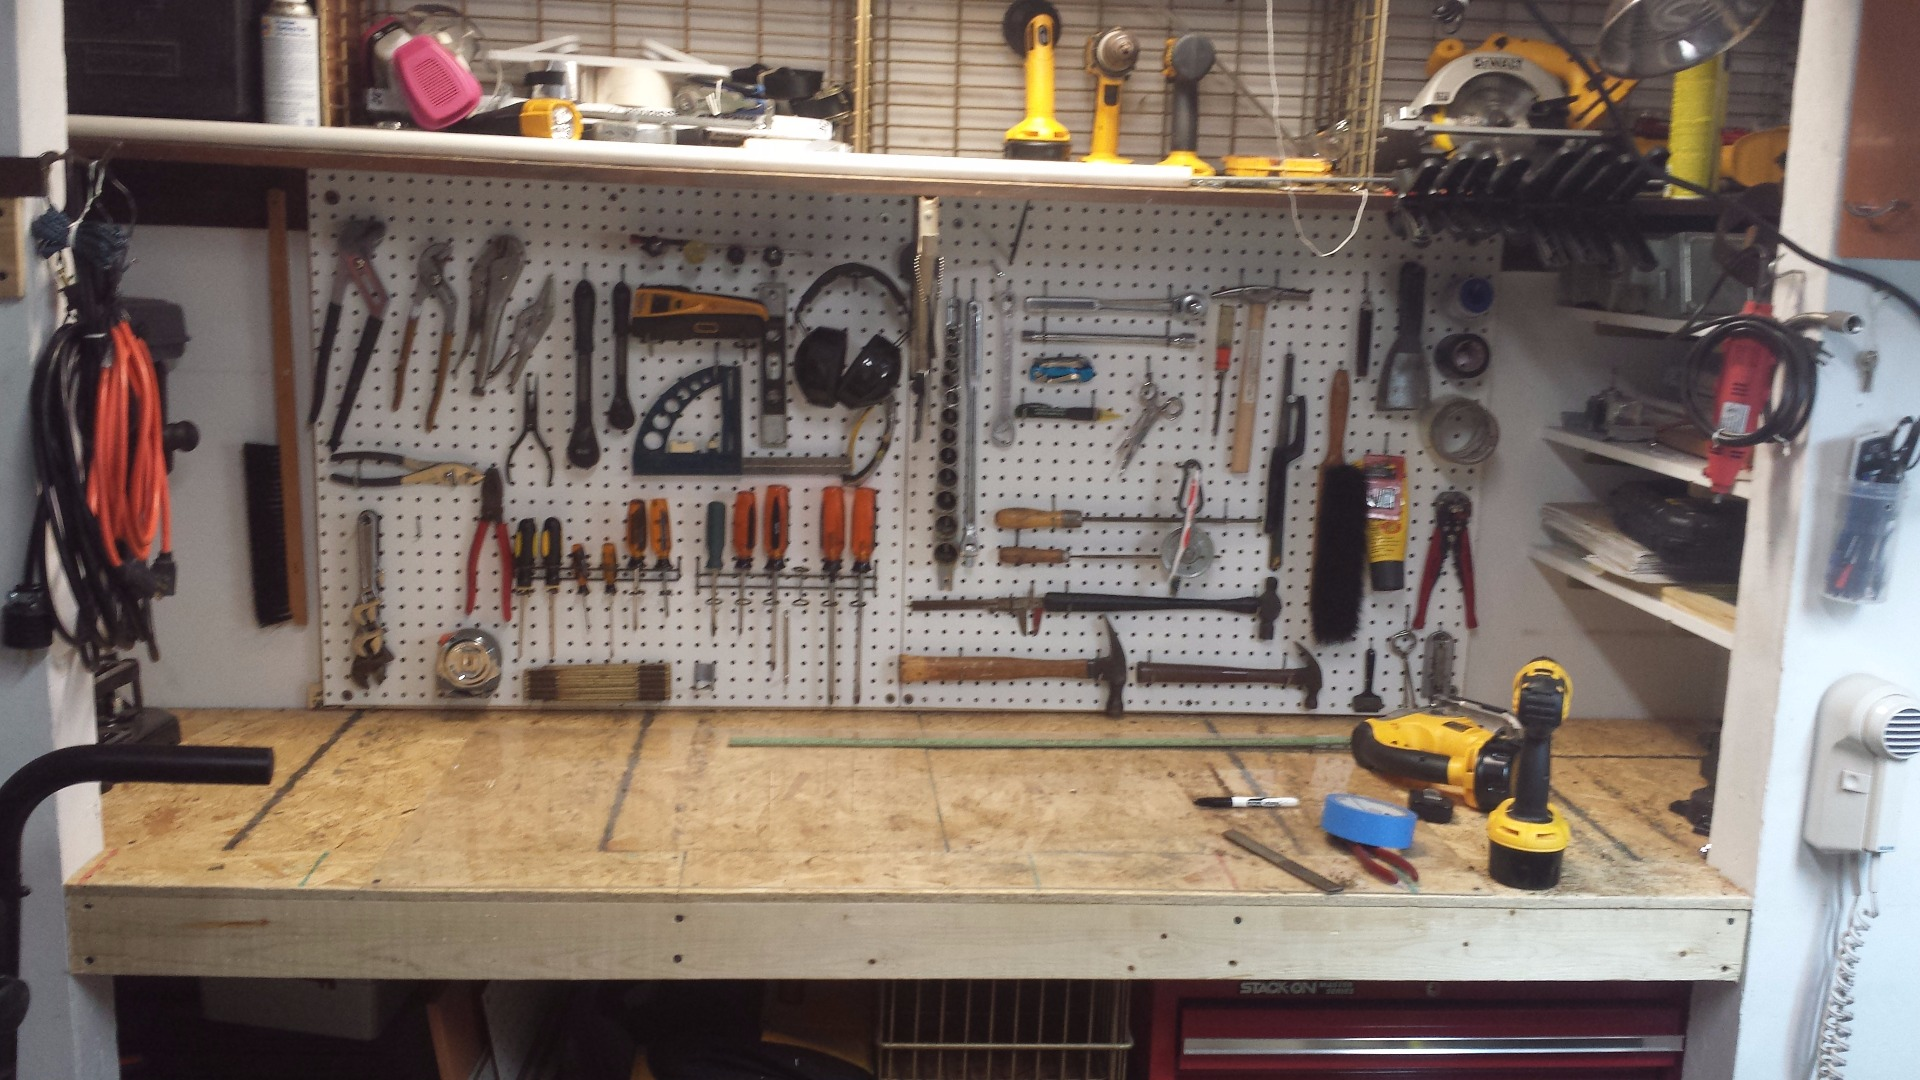 Picture of Workbench in Closet